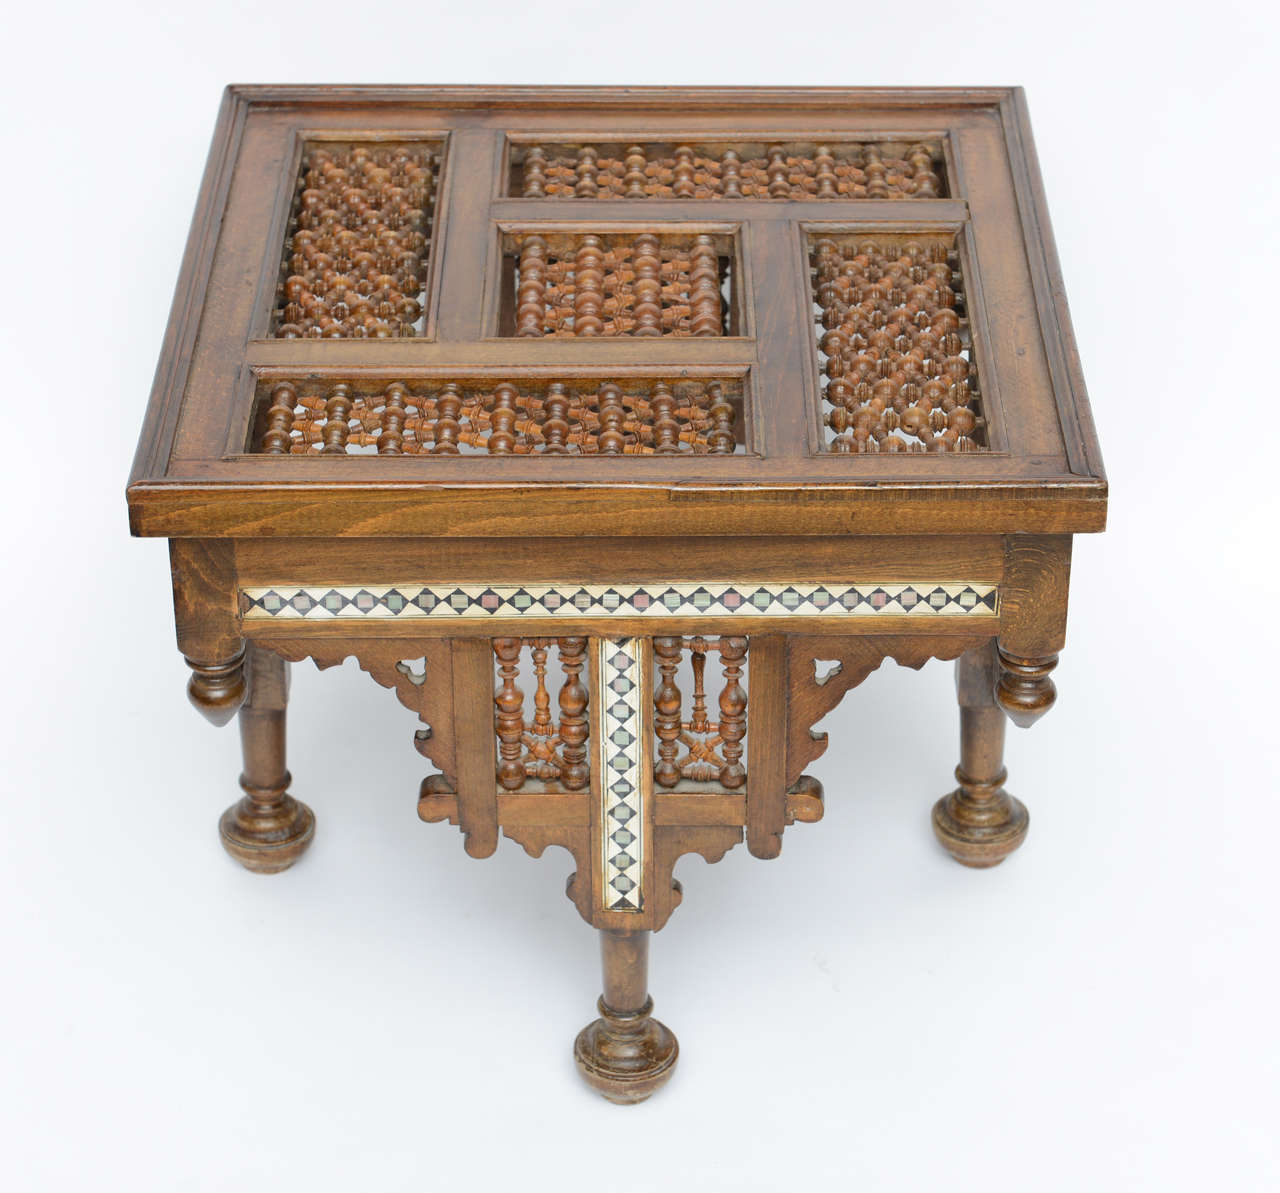 Moroccan Table Inlaid with Bone & Ivory, 19th Century image 3